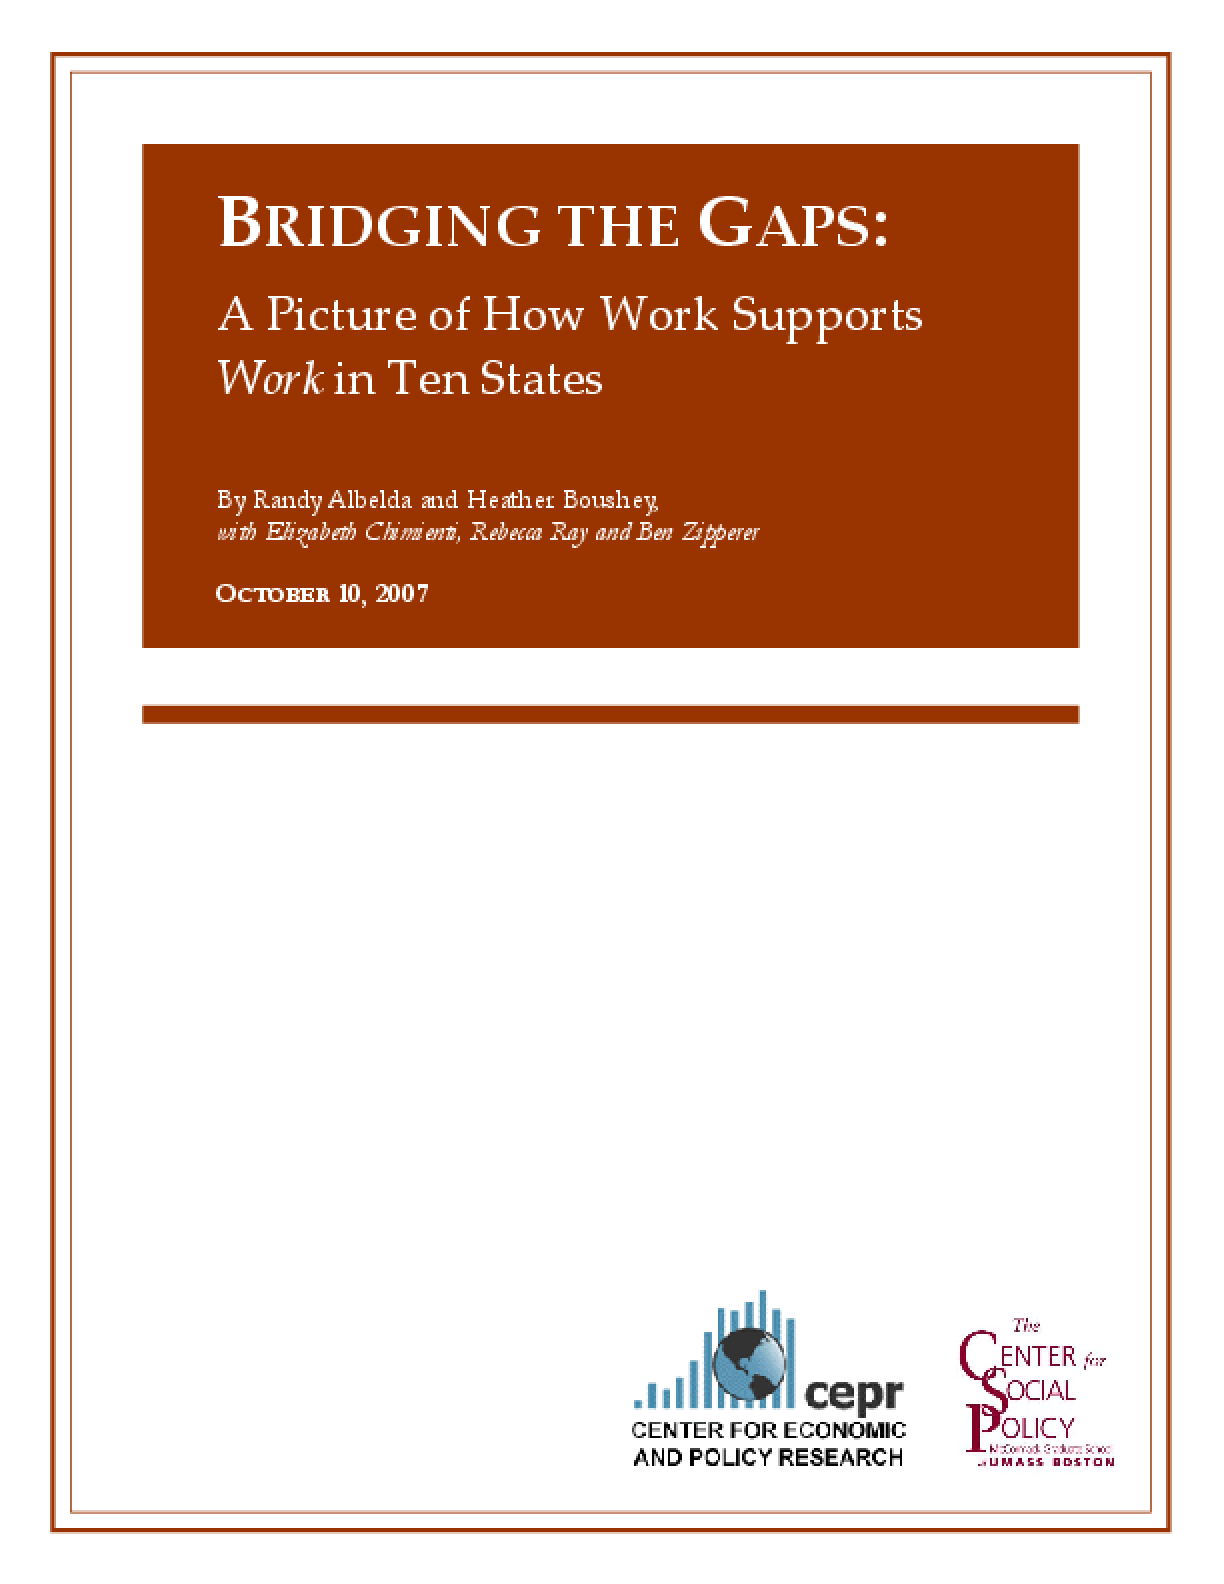 Bridging the Gaps: A Picture of How Work Supports Work in Ten States